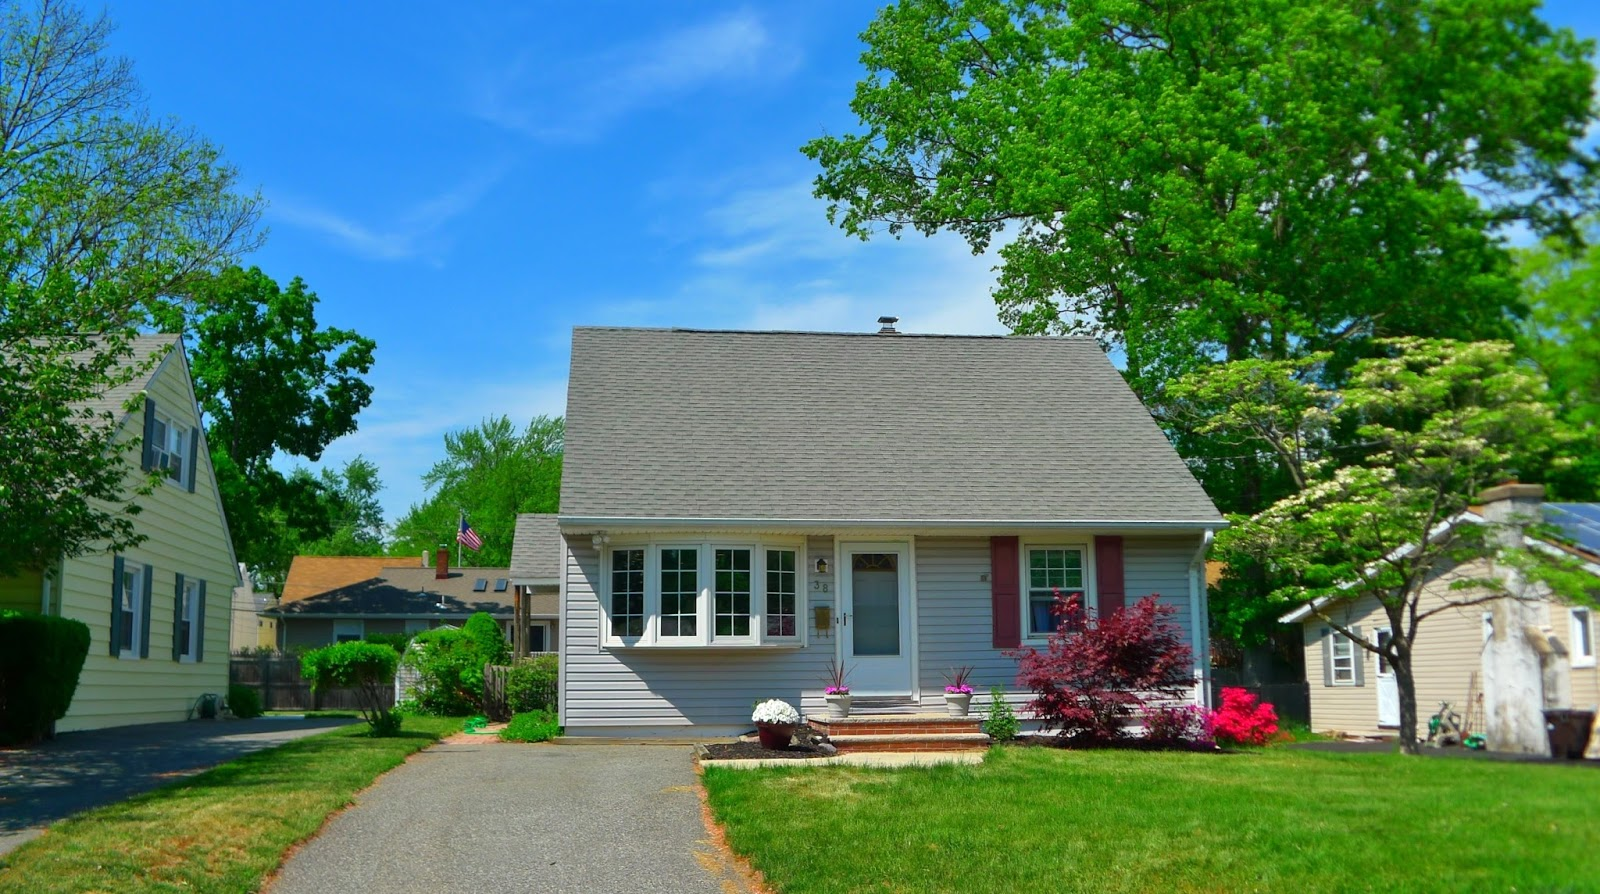 North Central Nj Real Estate And Homes Picture Perfect